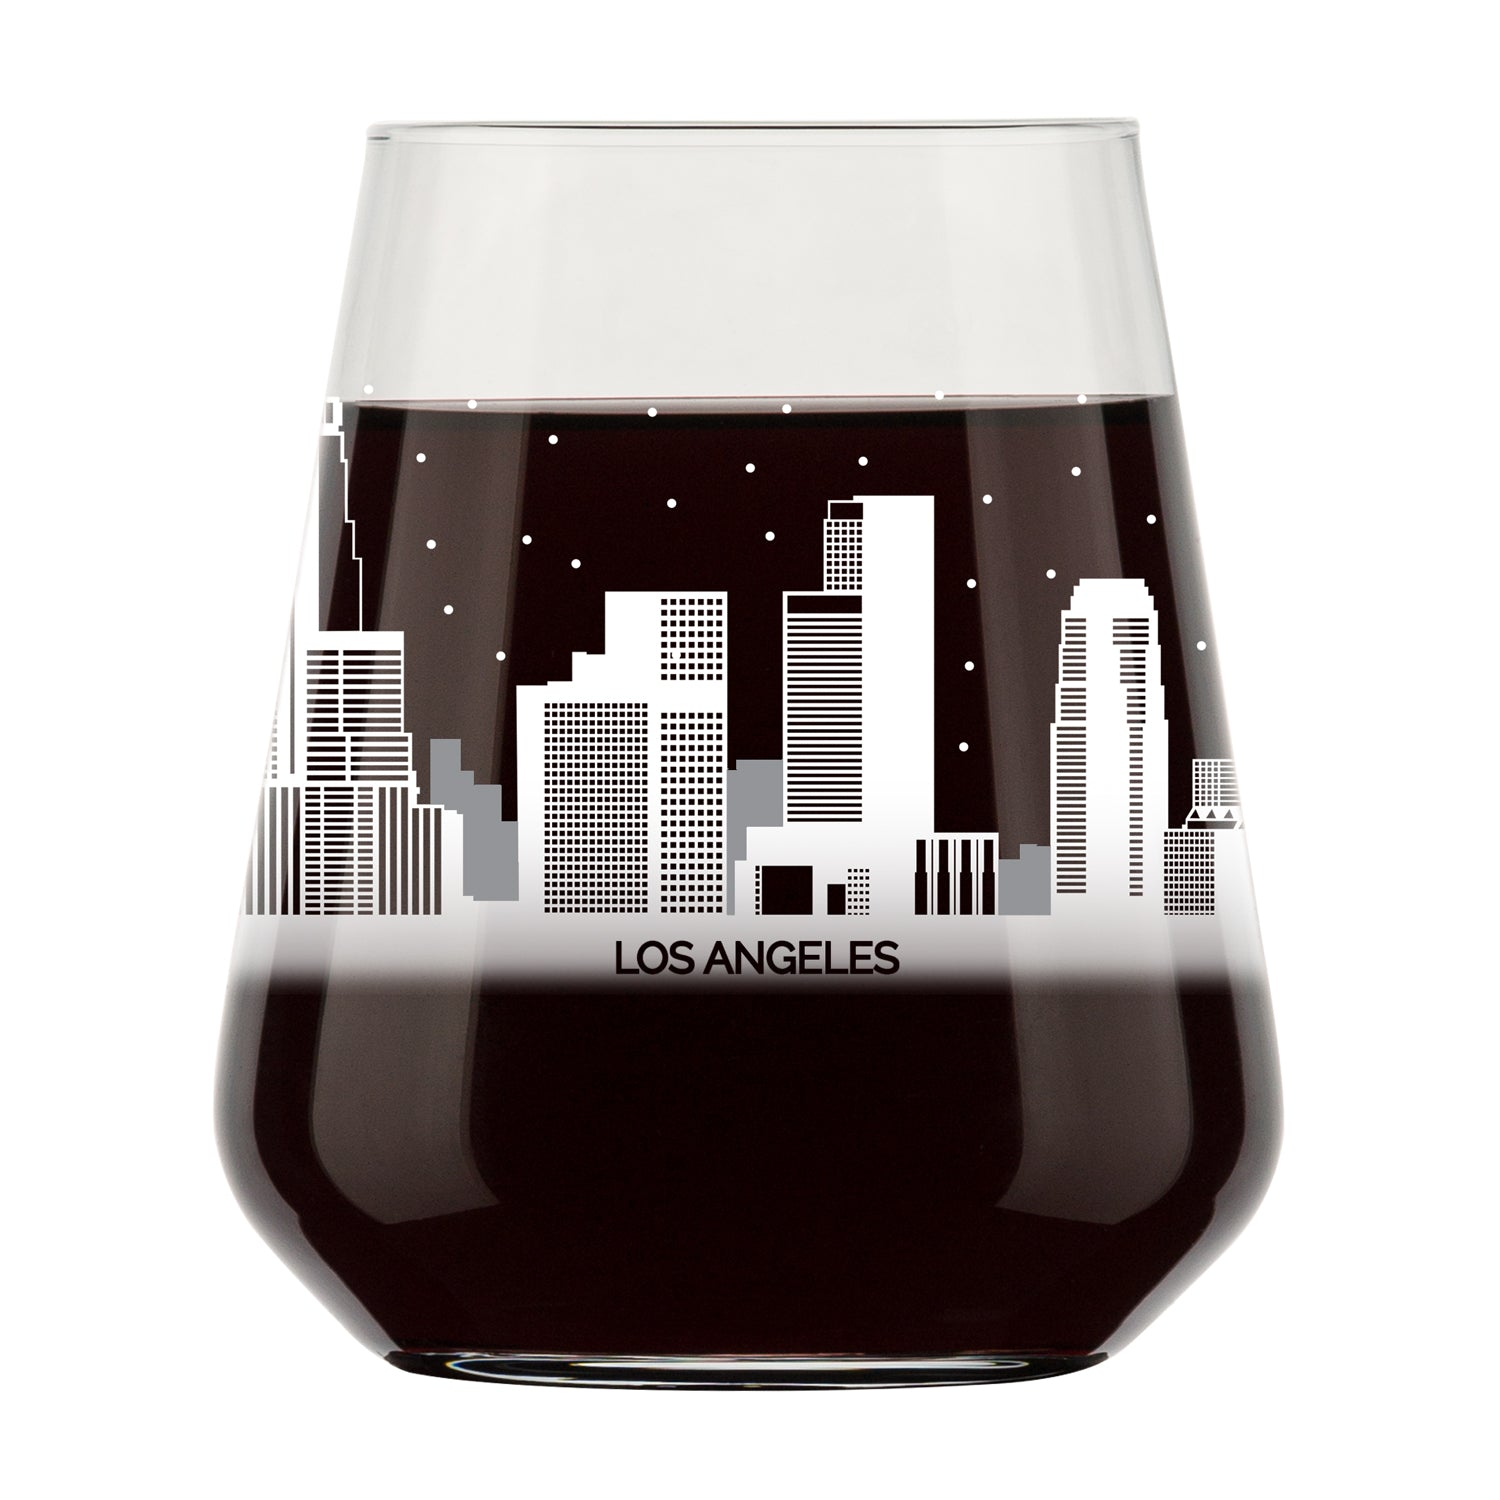 Los Angeles Skyline Stemless Wine Glass- Cool L.A. Souvenir or gift for traveler- Nostalgic Cityscape Los Angeles Souvenirs- Dishwasher Safe, Non-Toxic, Organic Ink Printed in USA